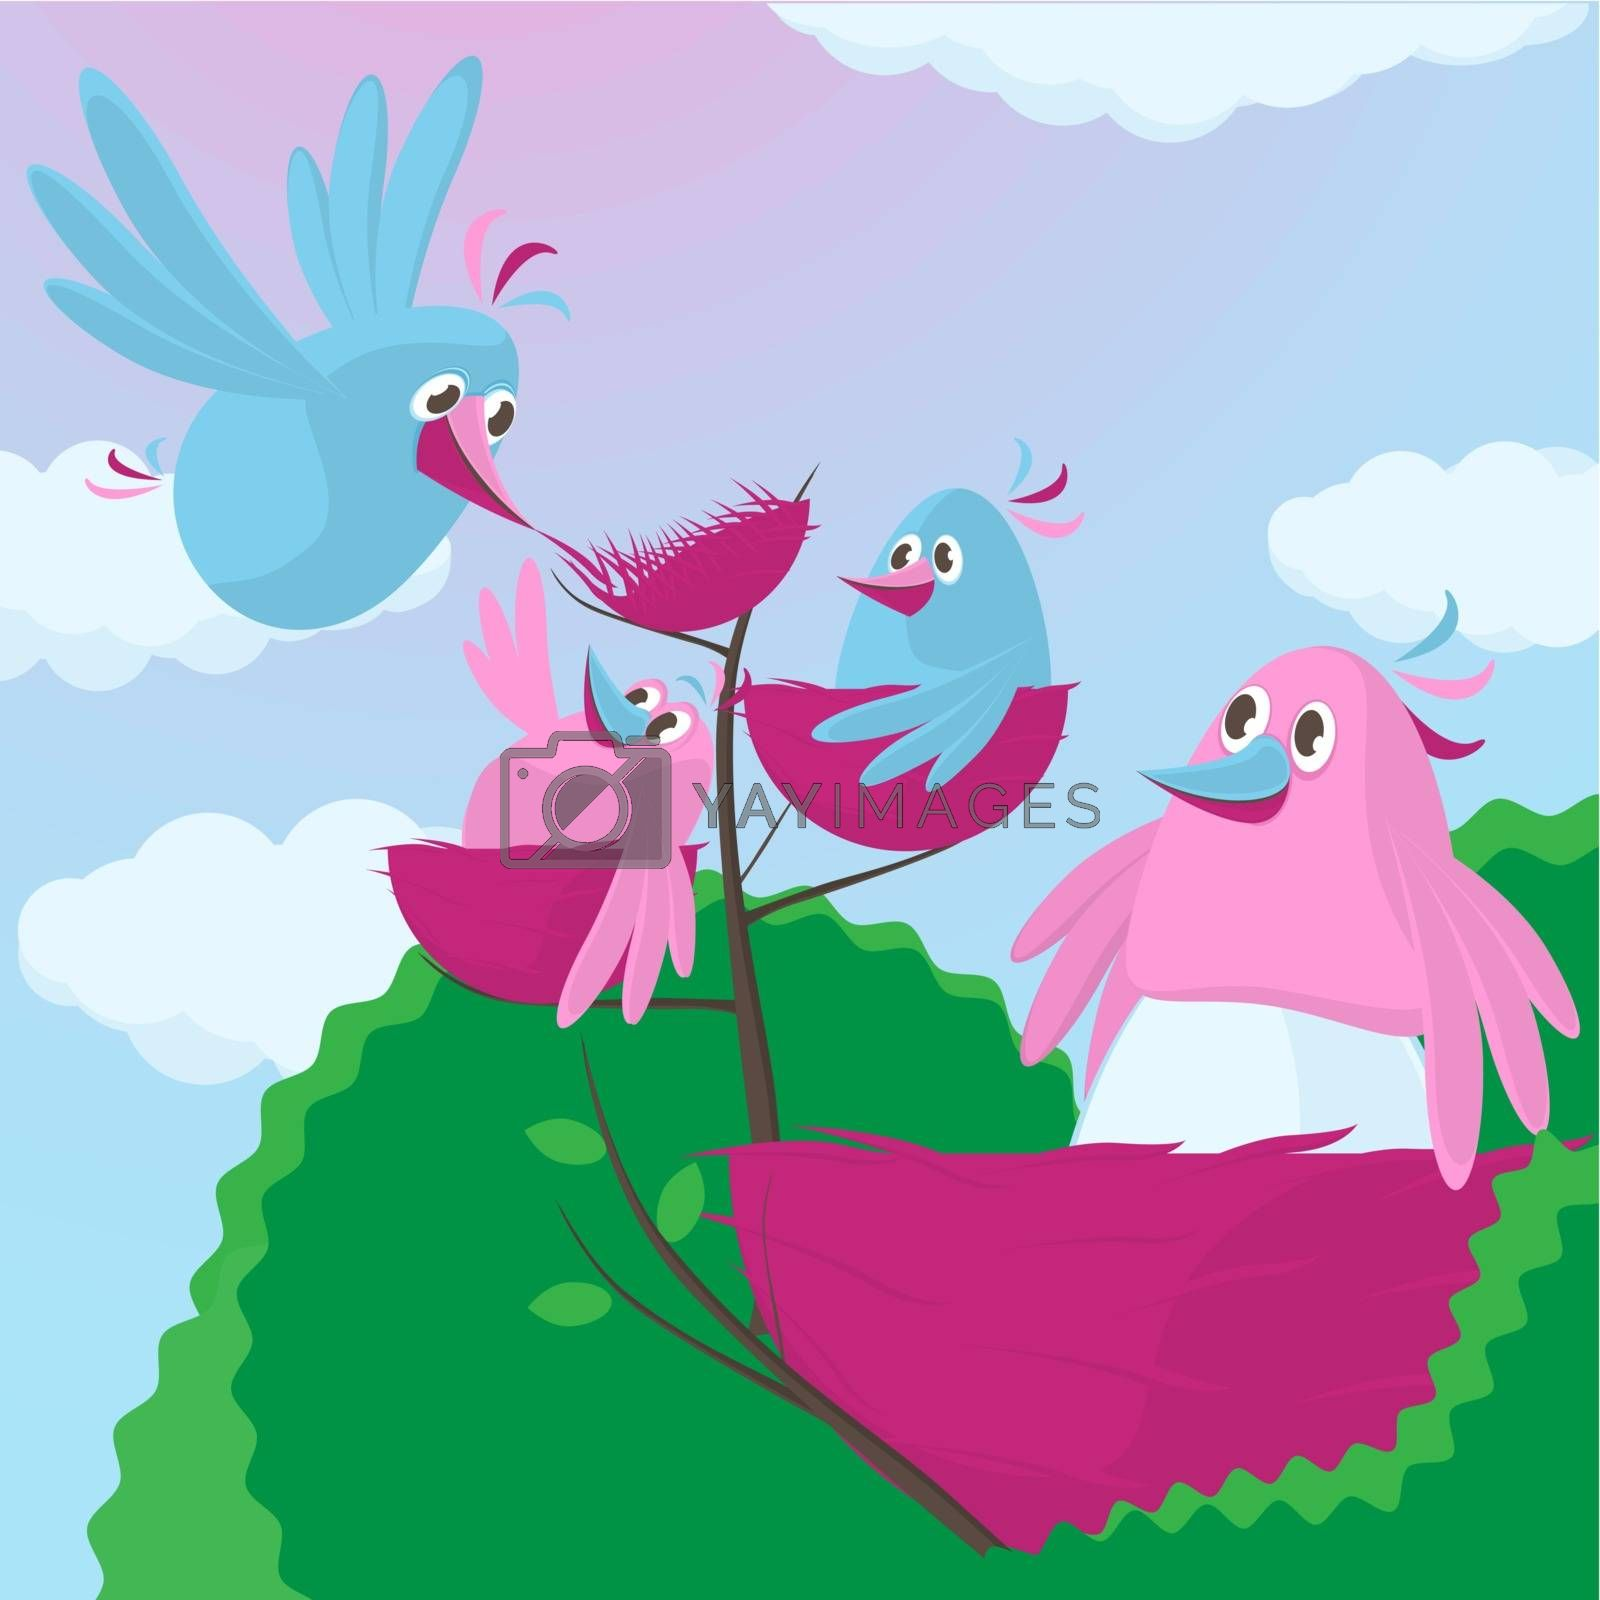 Cute cartoon birds with an expanding family with the female sitting on the nest with ancillary small nests above containing babies as the father builds another little nest at the top for a new arrival